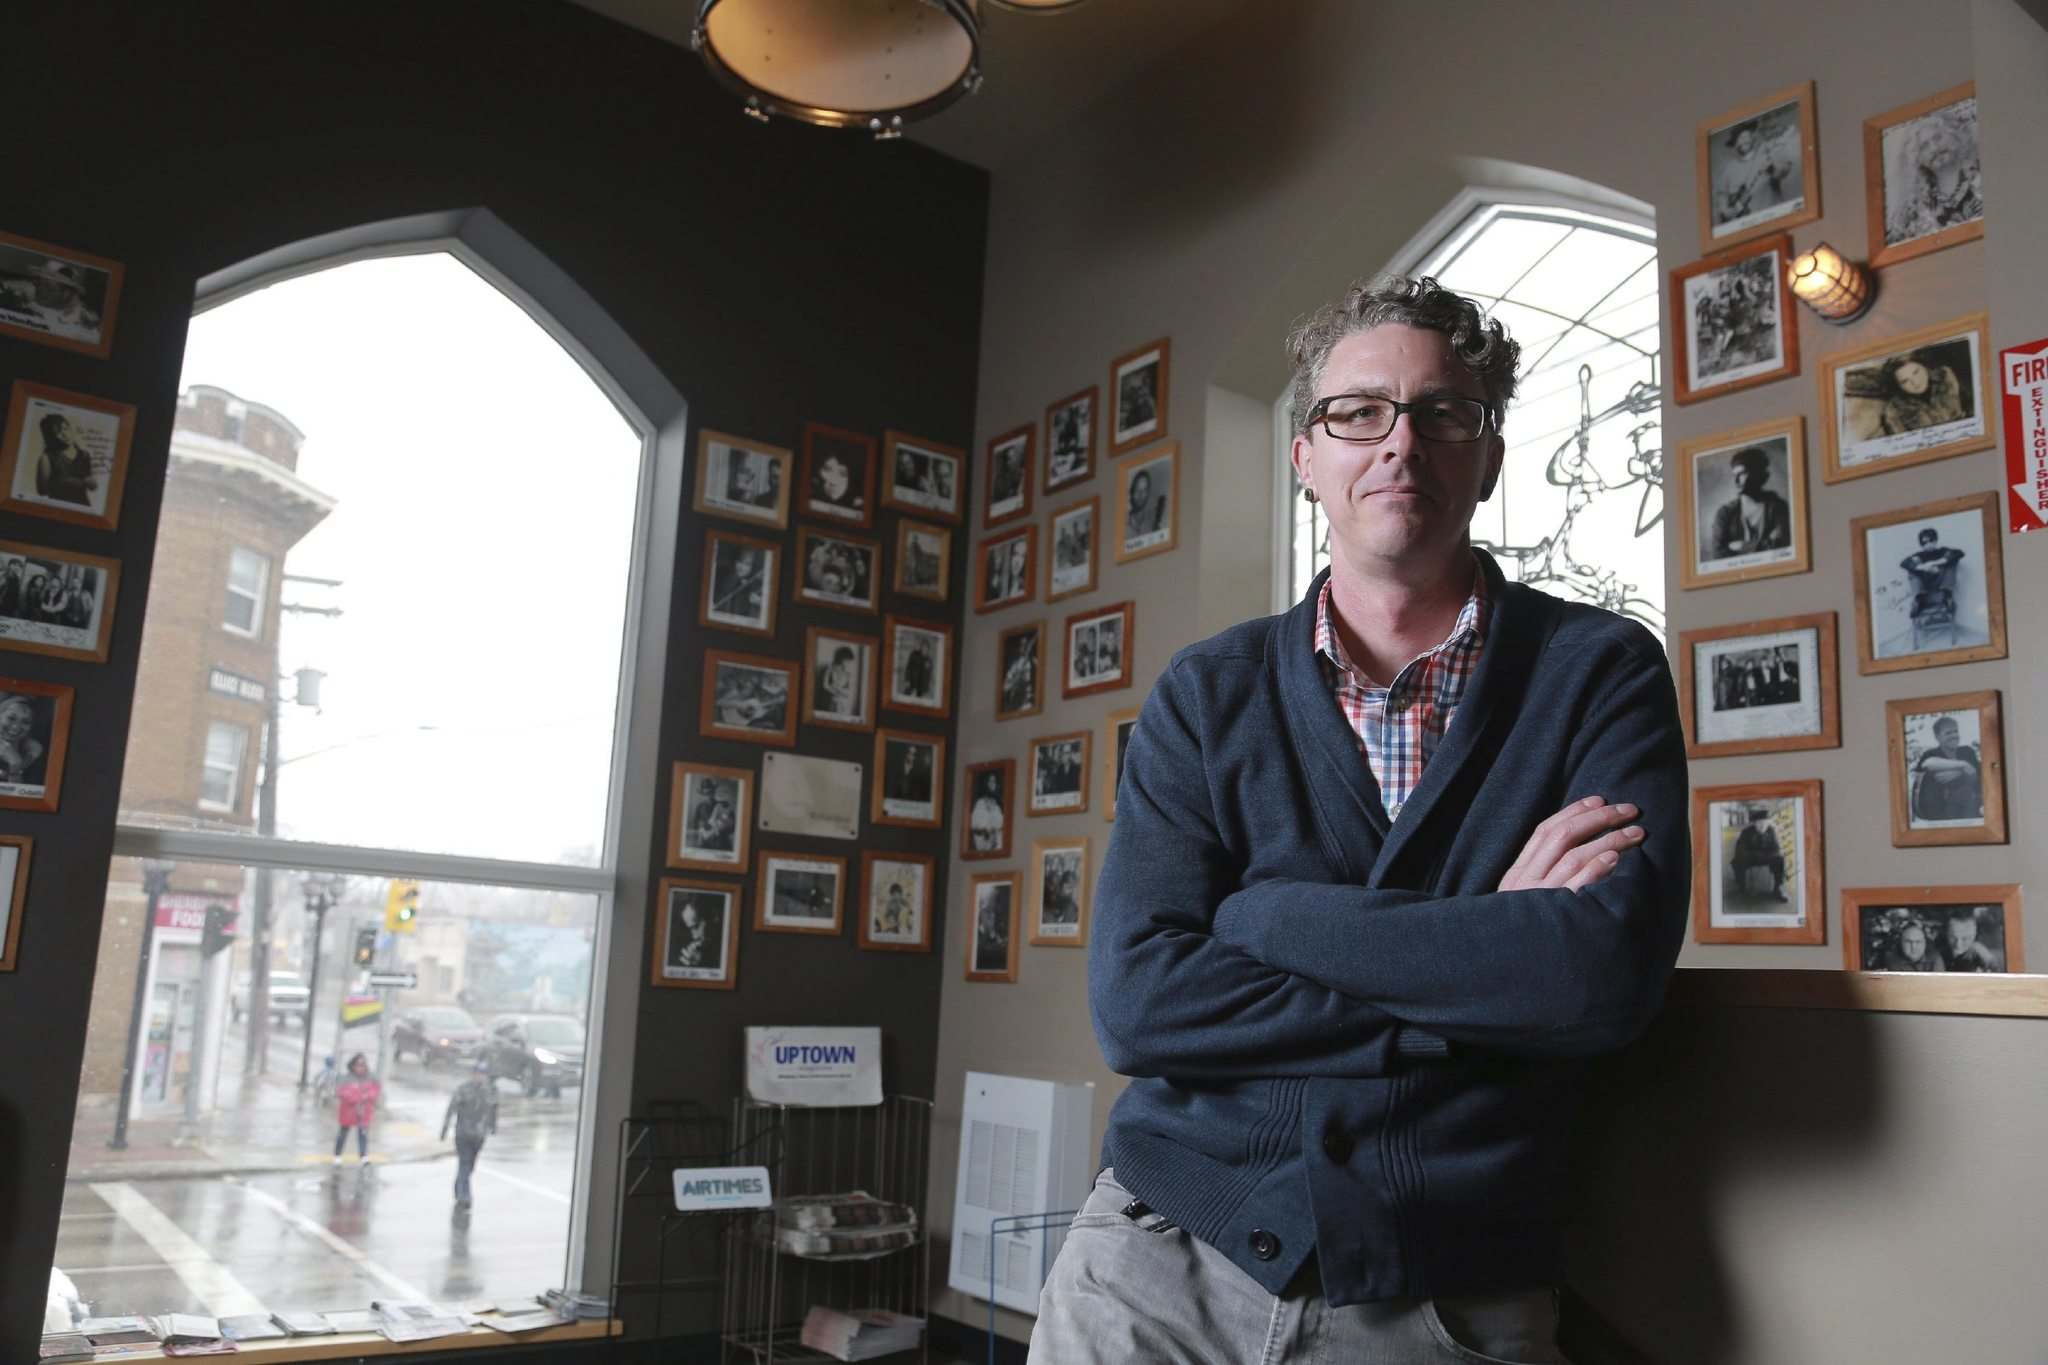 COLIN CORNEAU / WINNIPEG FREE PRESS FILES</p><p>Artistic director Jason Hooper is taking on the expanded role of executive director. </p>